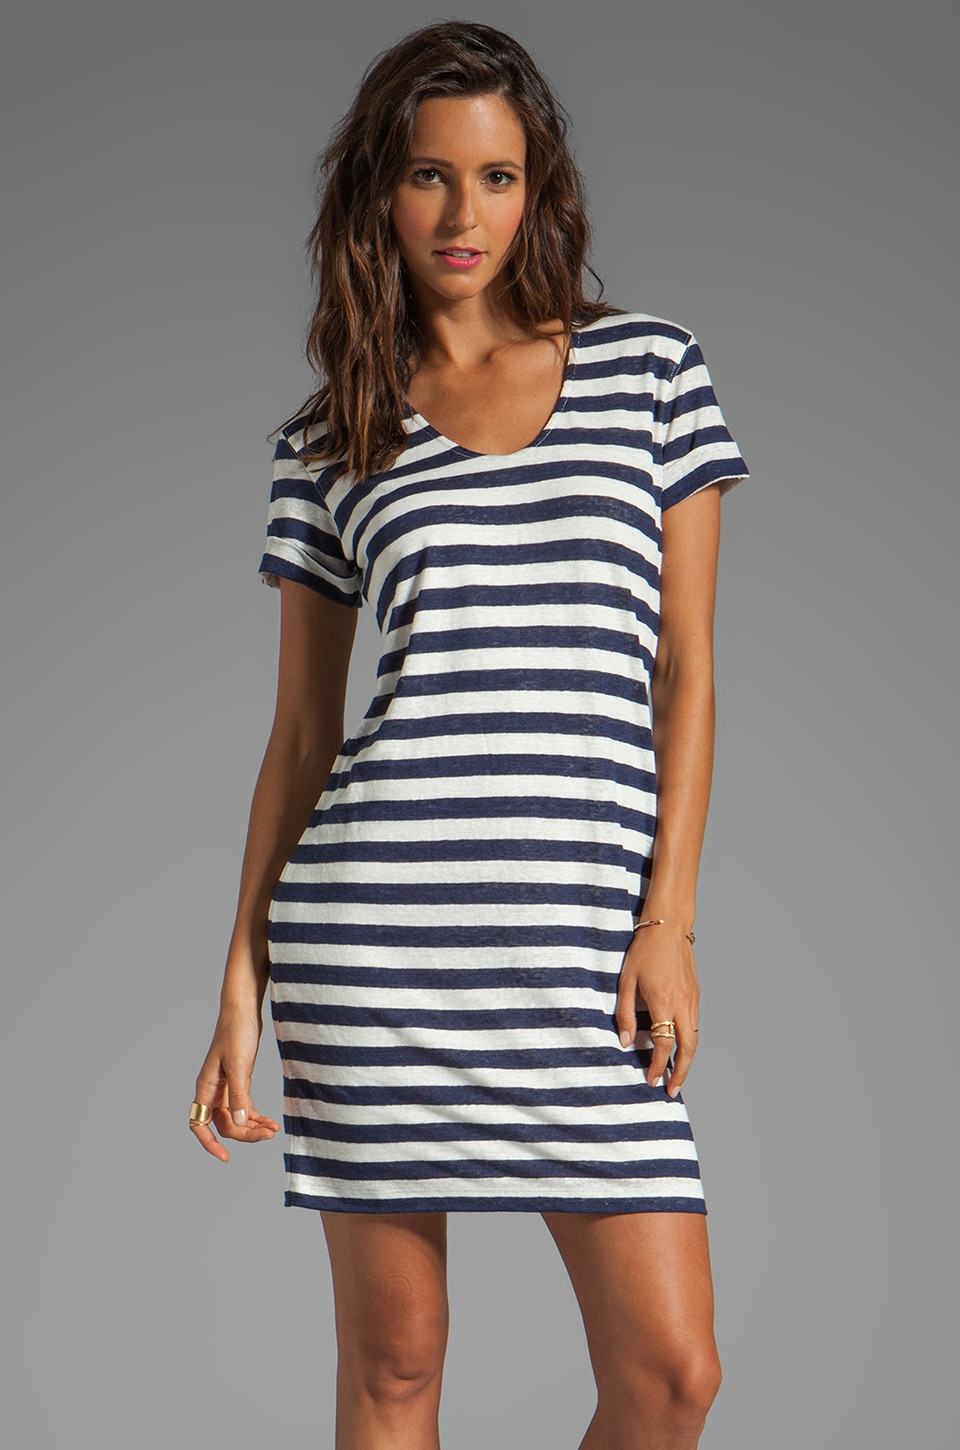 Theory Karelo L Dress in Navy/Ivory